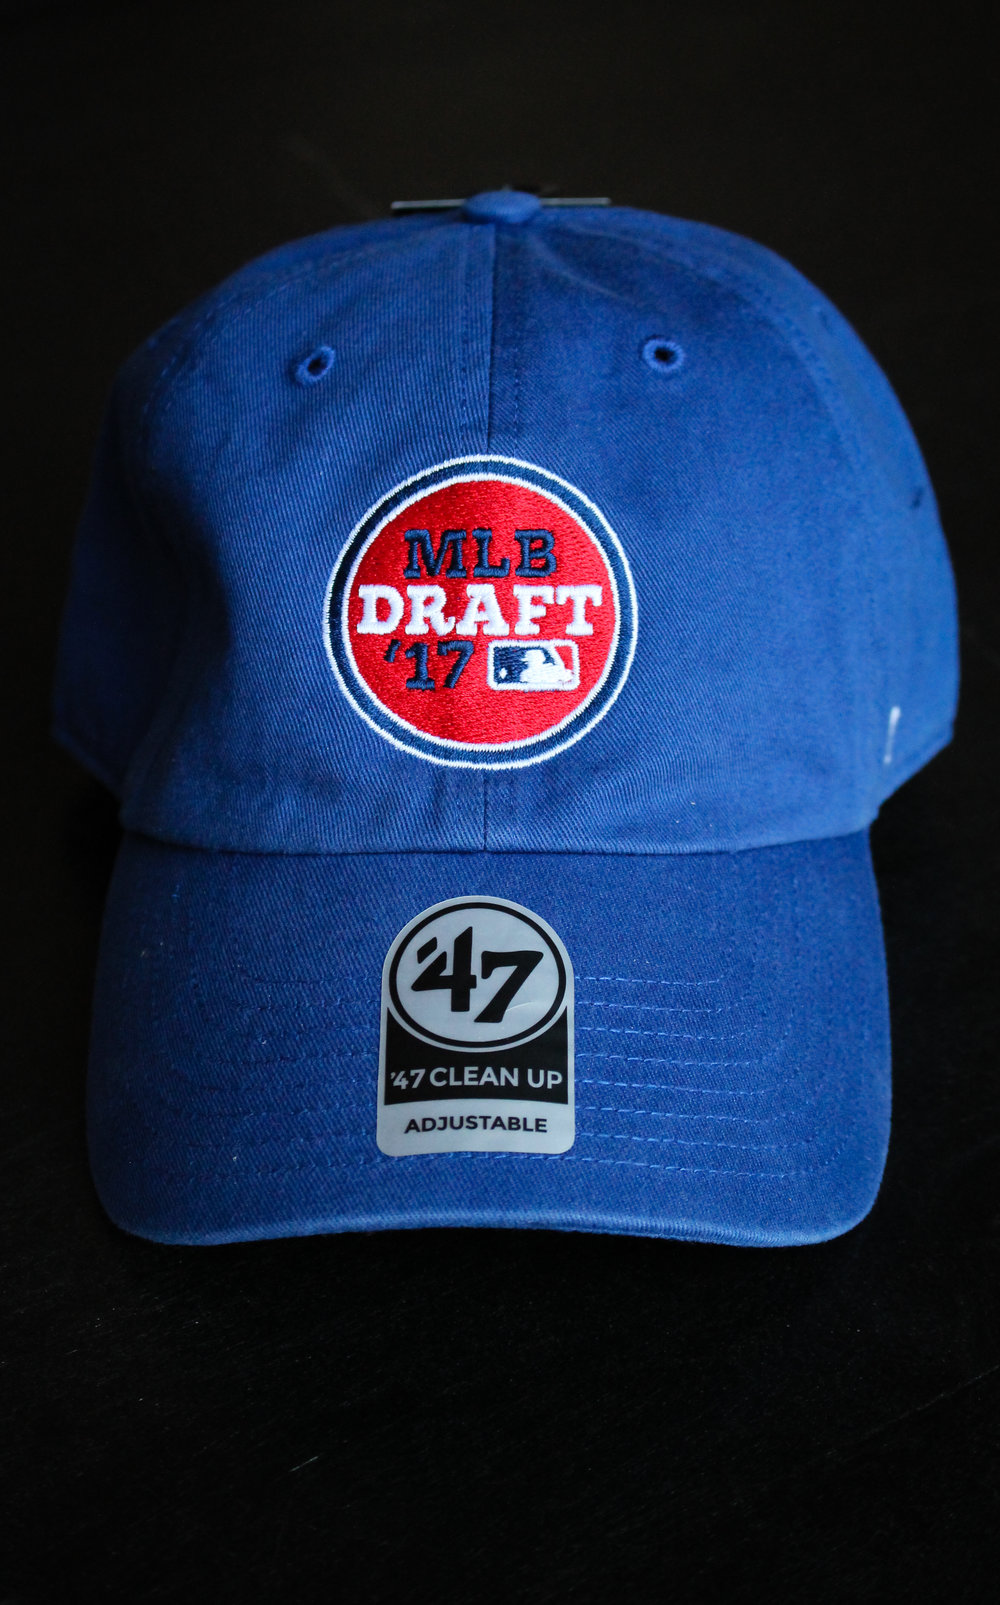 MLB Draft Logo Design on Cap